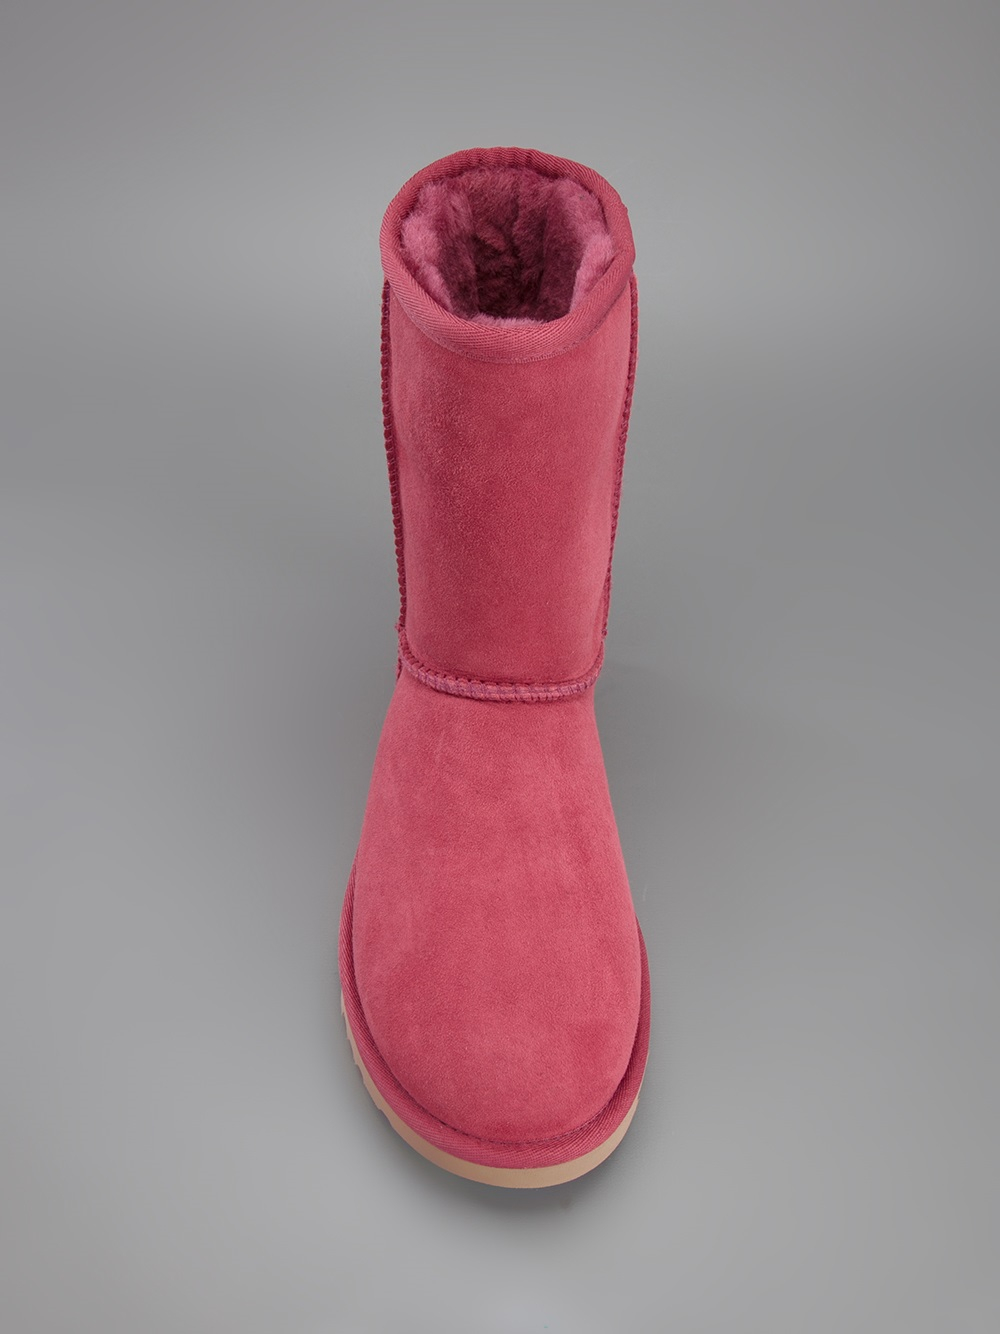 Ugg Classic Short Boot In Pink Lyst